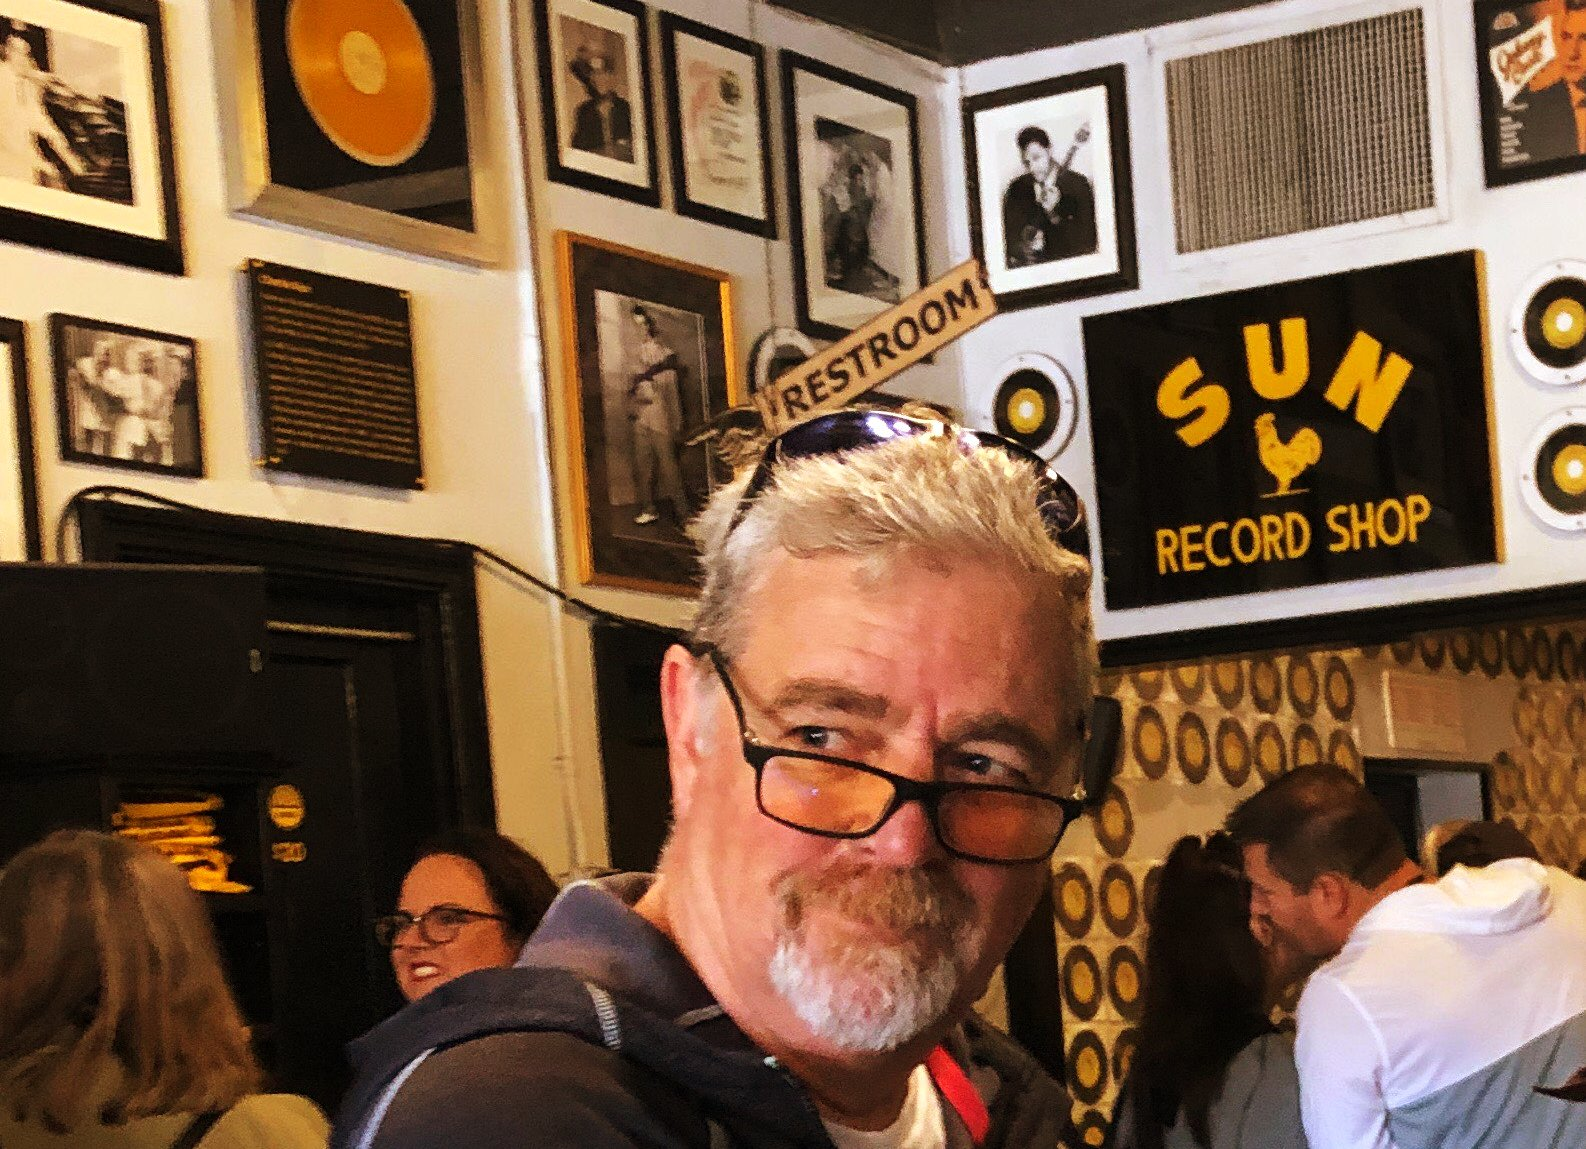 Mike at the Sun records record shop